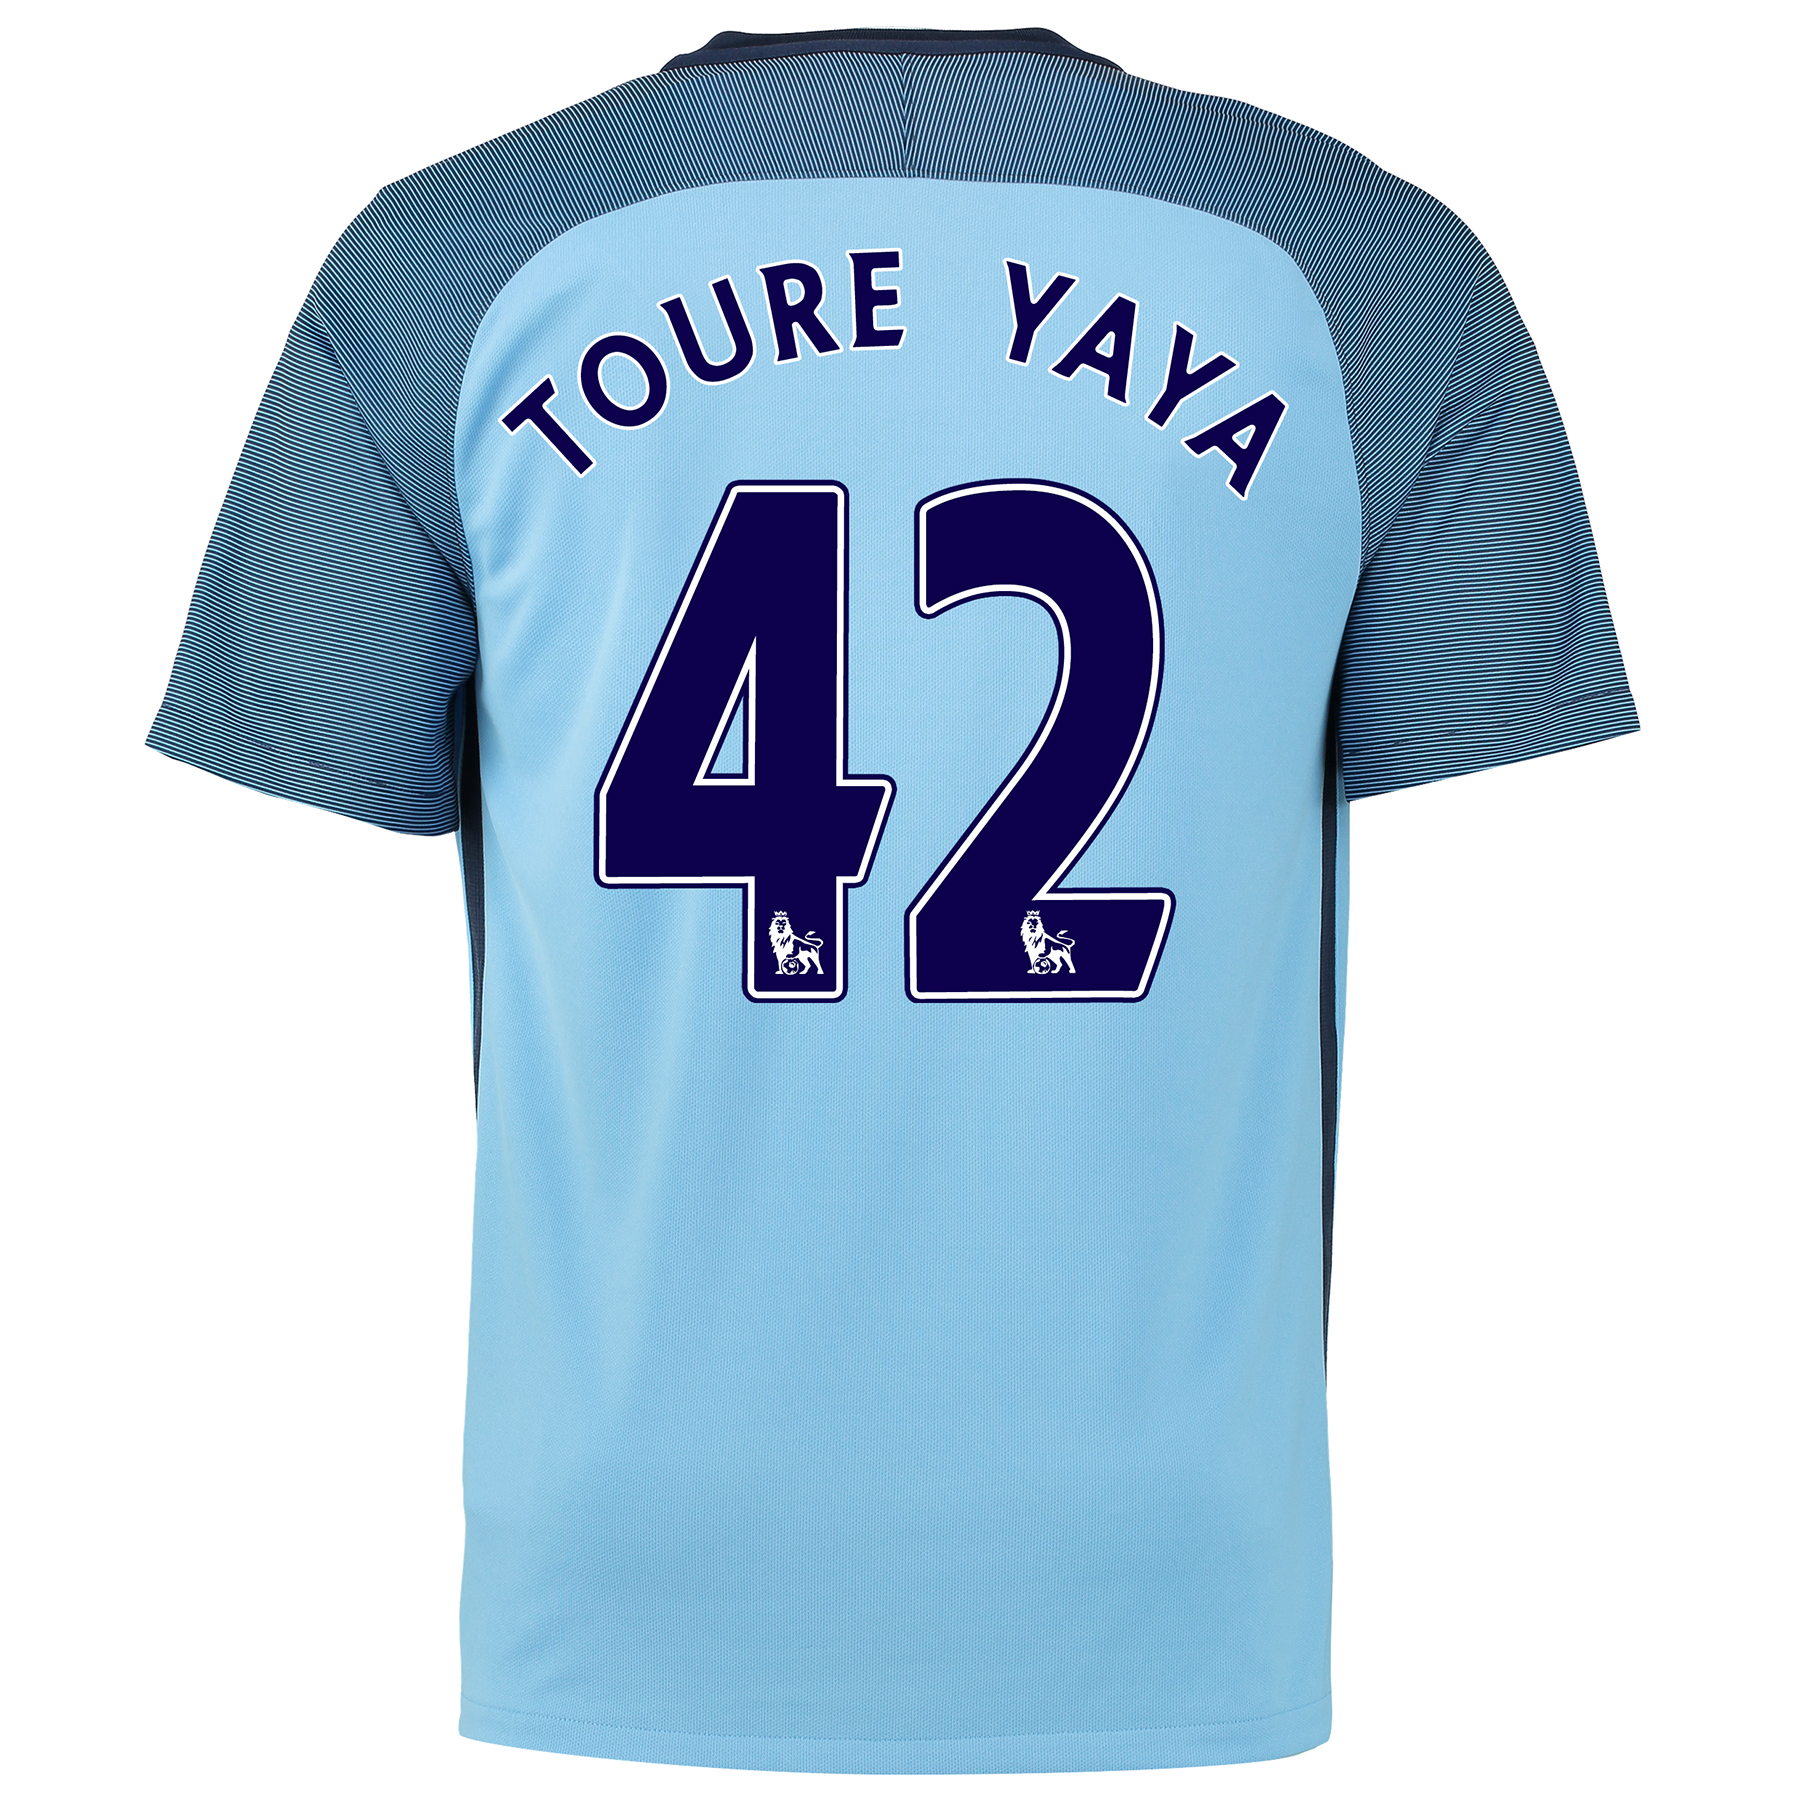 Manchester City Home Shirt 2016-17 with Toure Yaya 42 printing